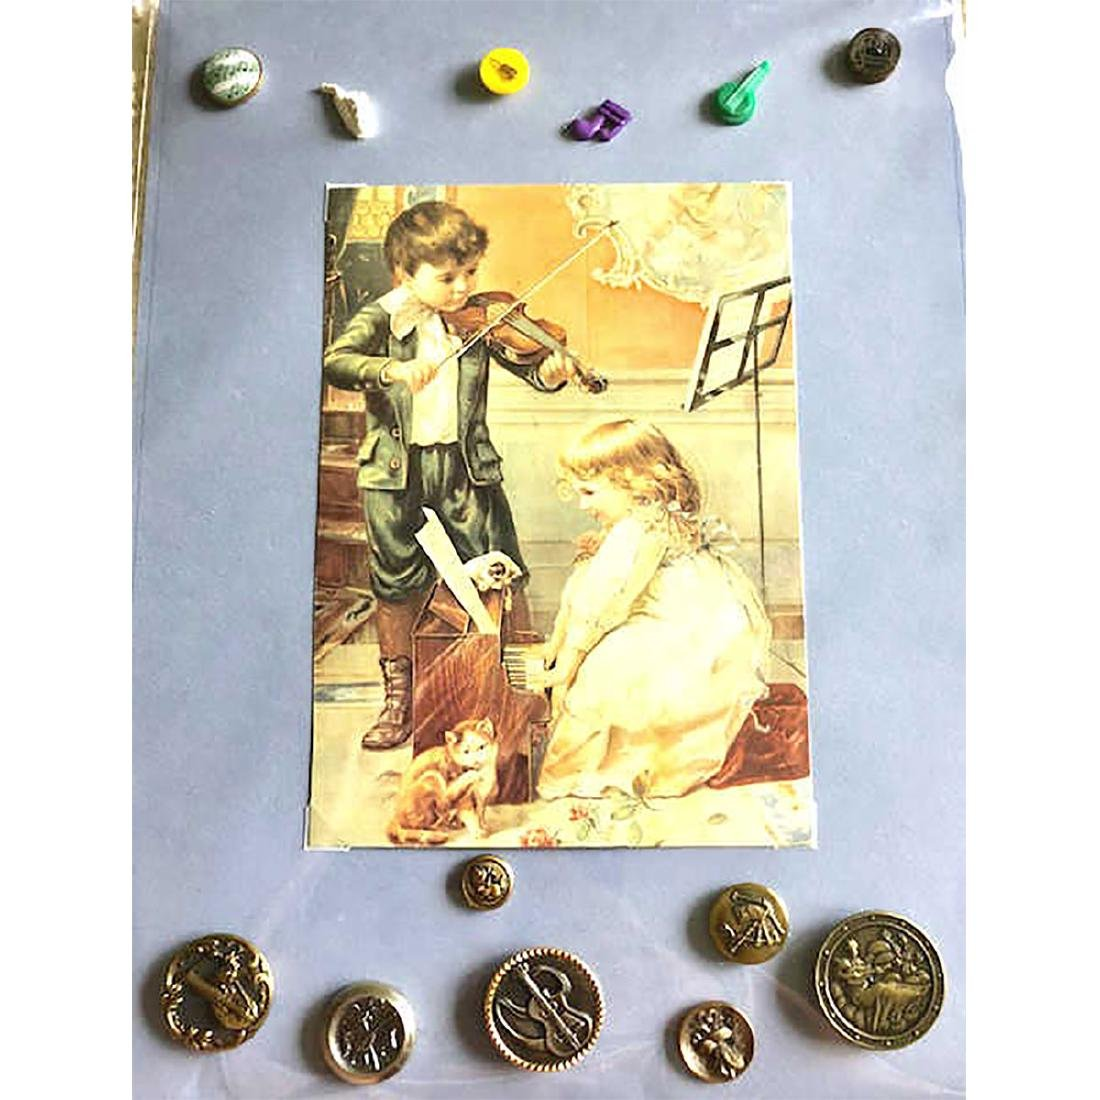 4 CARDS INCLUDING MUSICAL INSTRUMENT BUTTONS